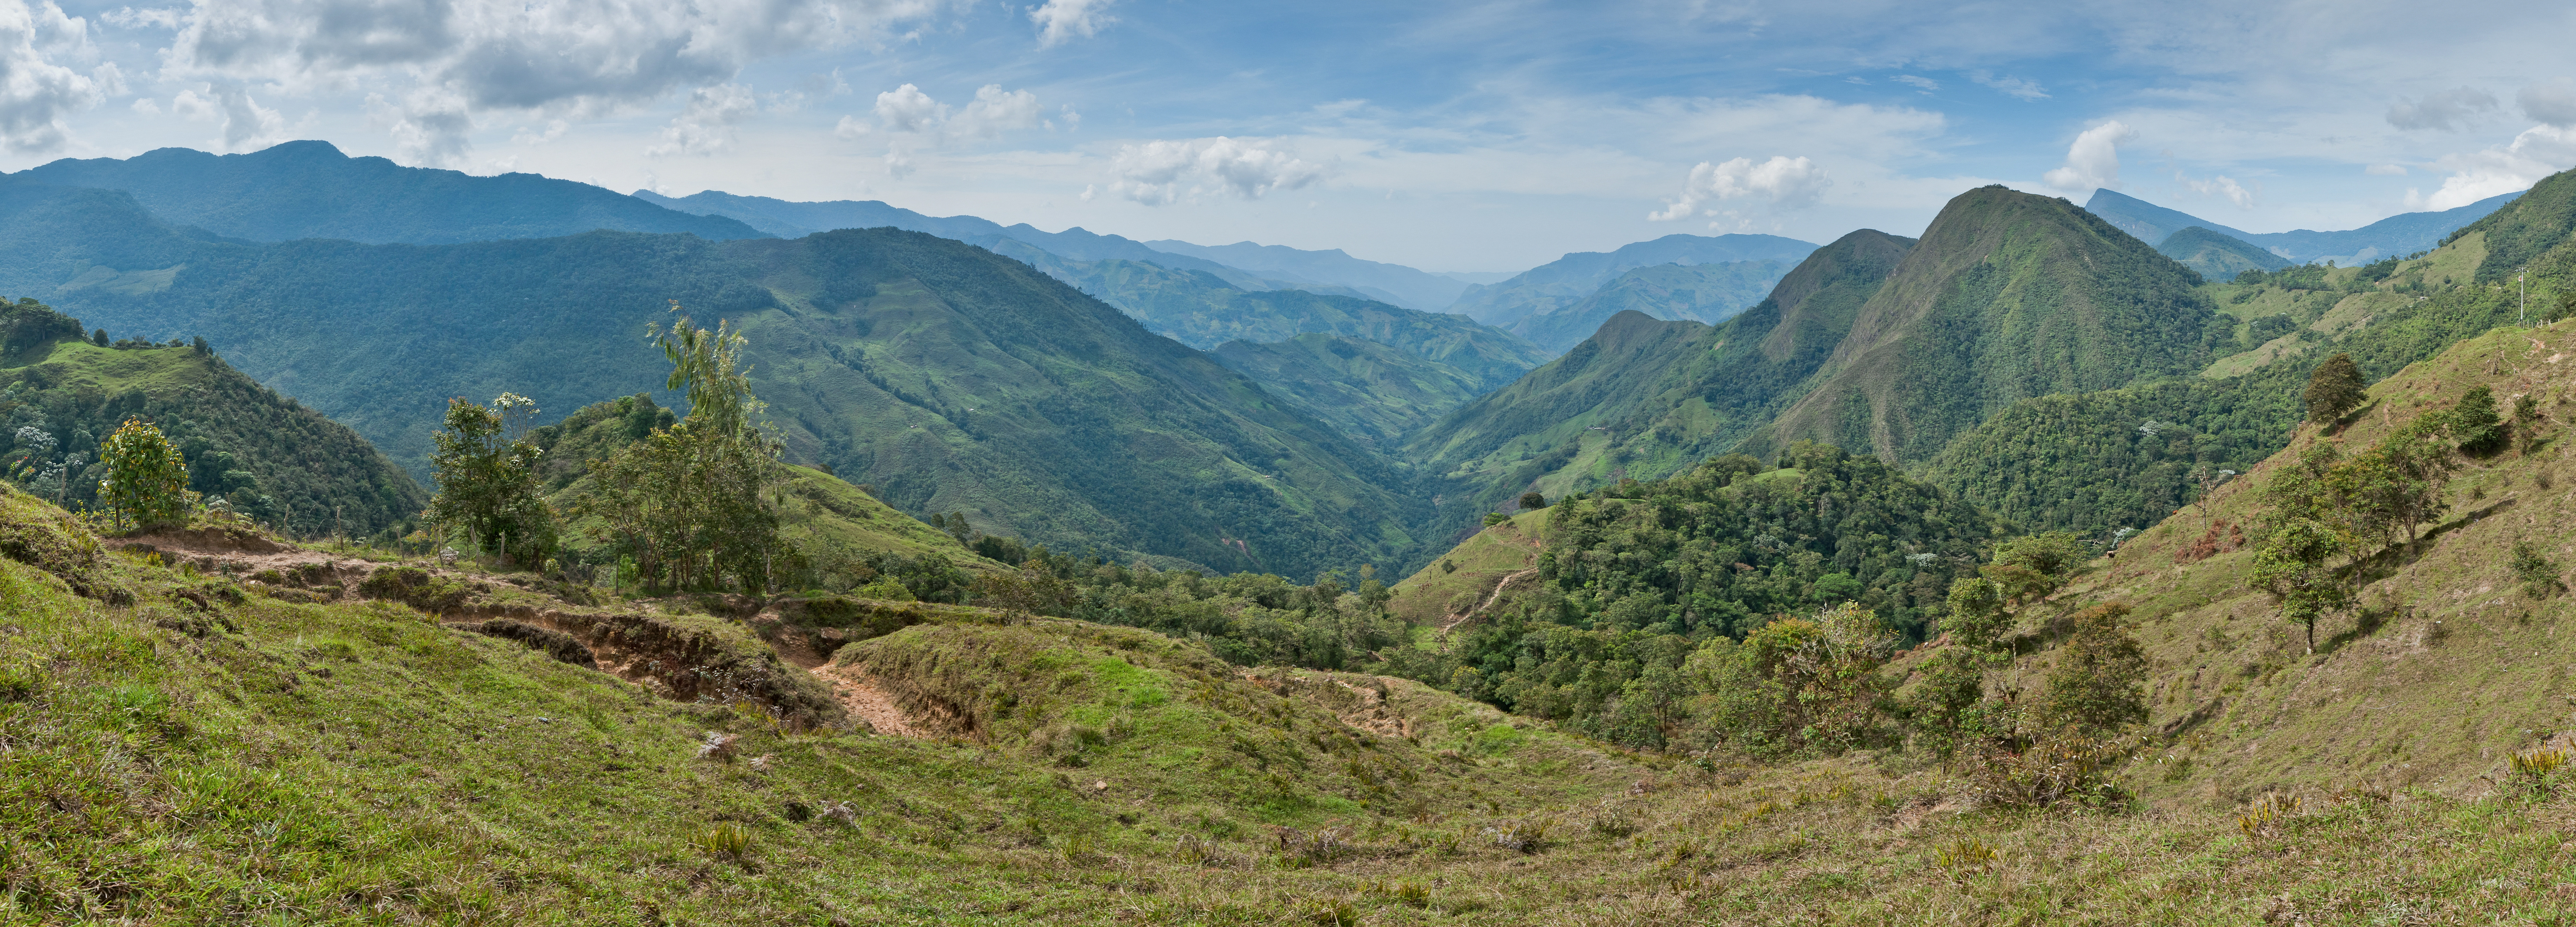 file andes mountains panoramic view jpg wikimedia commons